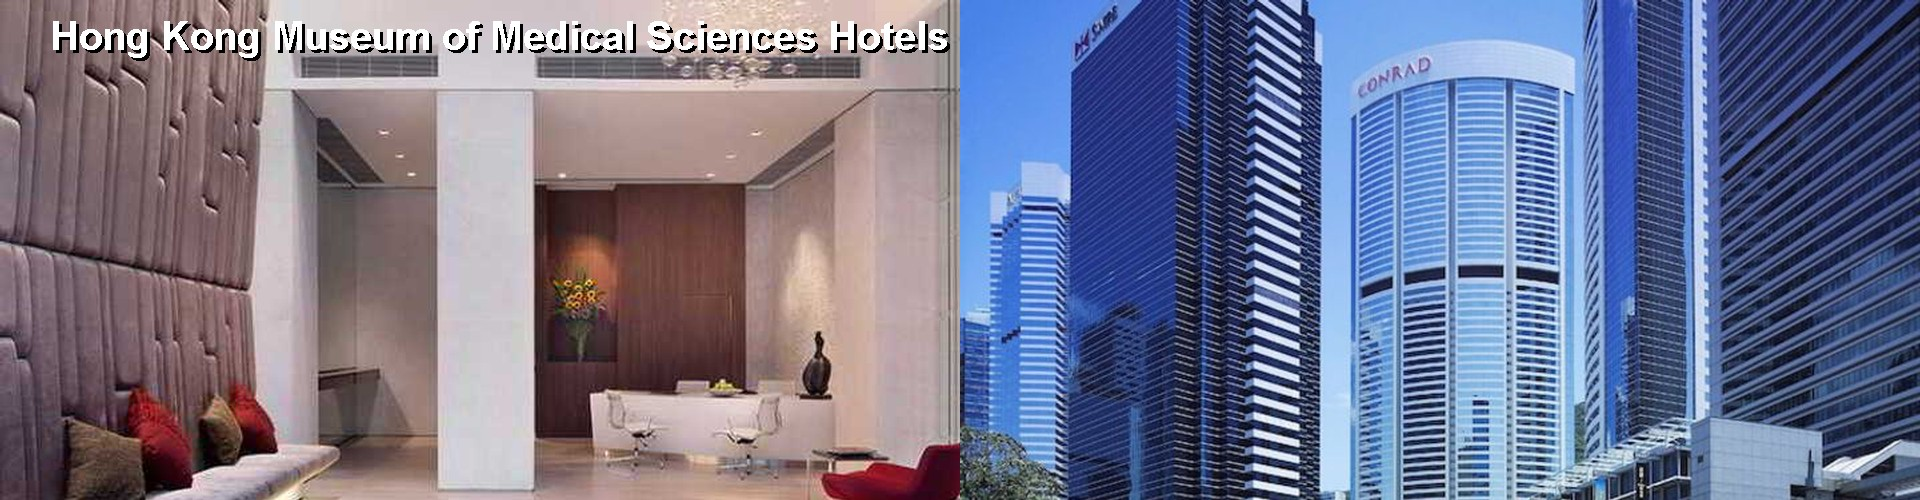 5 Best Hotels near Hong Kong Museum of Medical Sciences